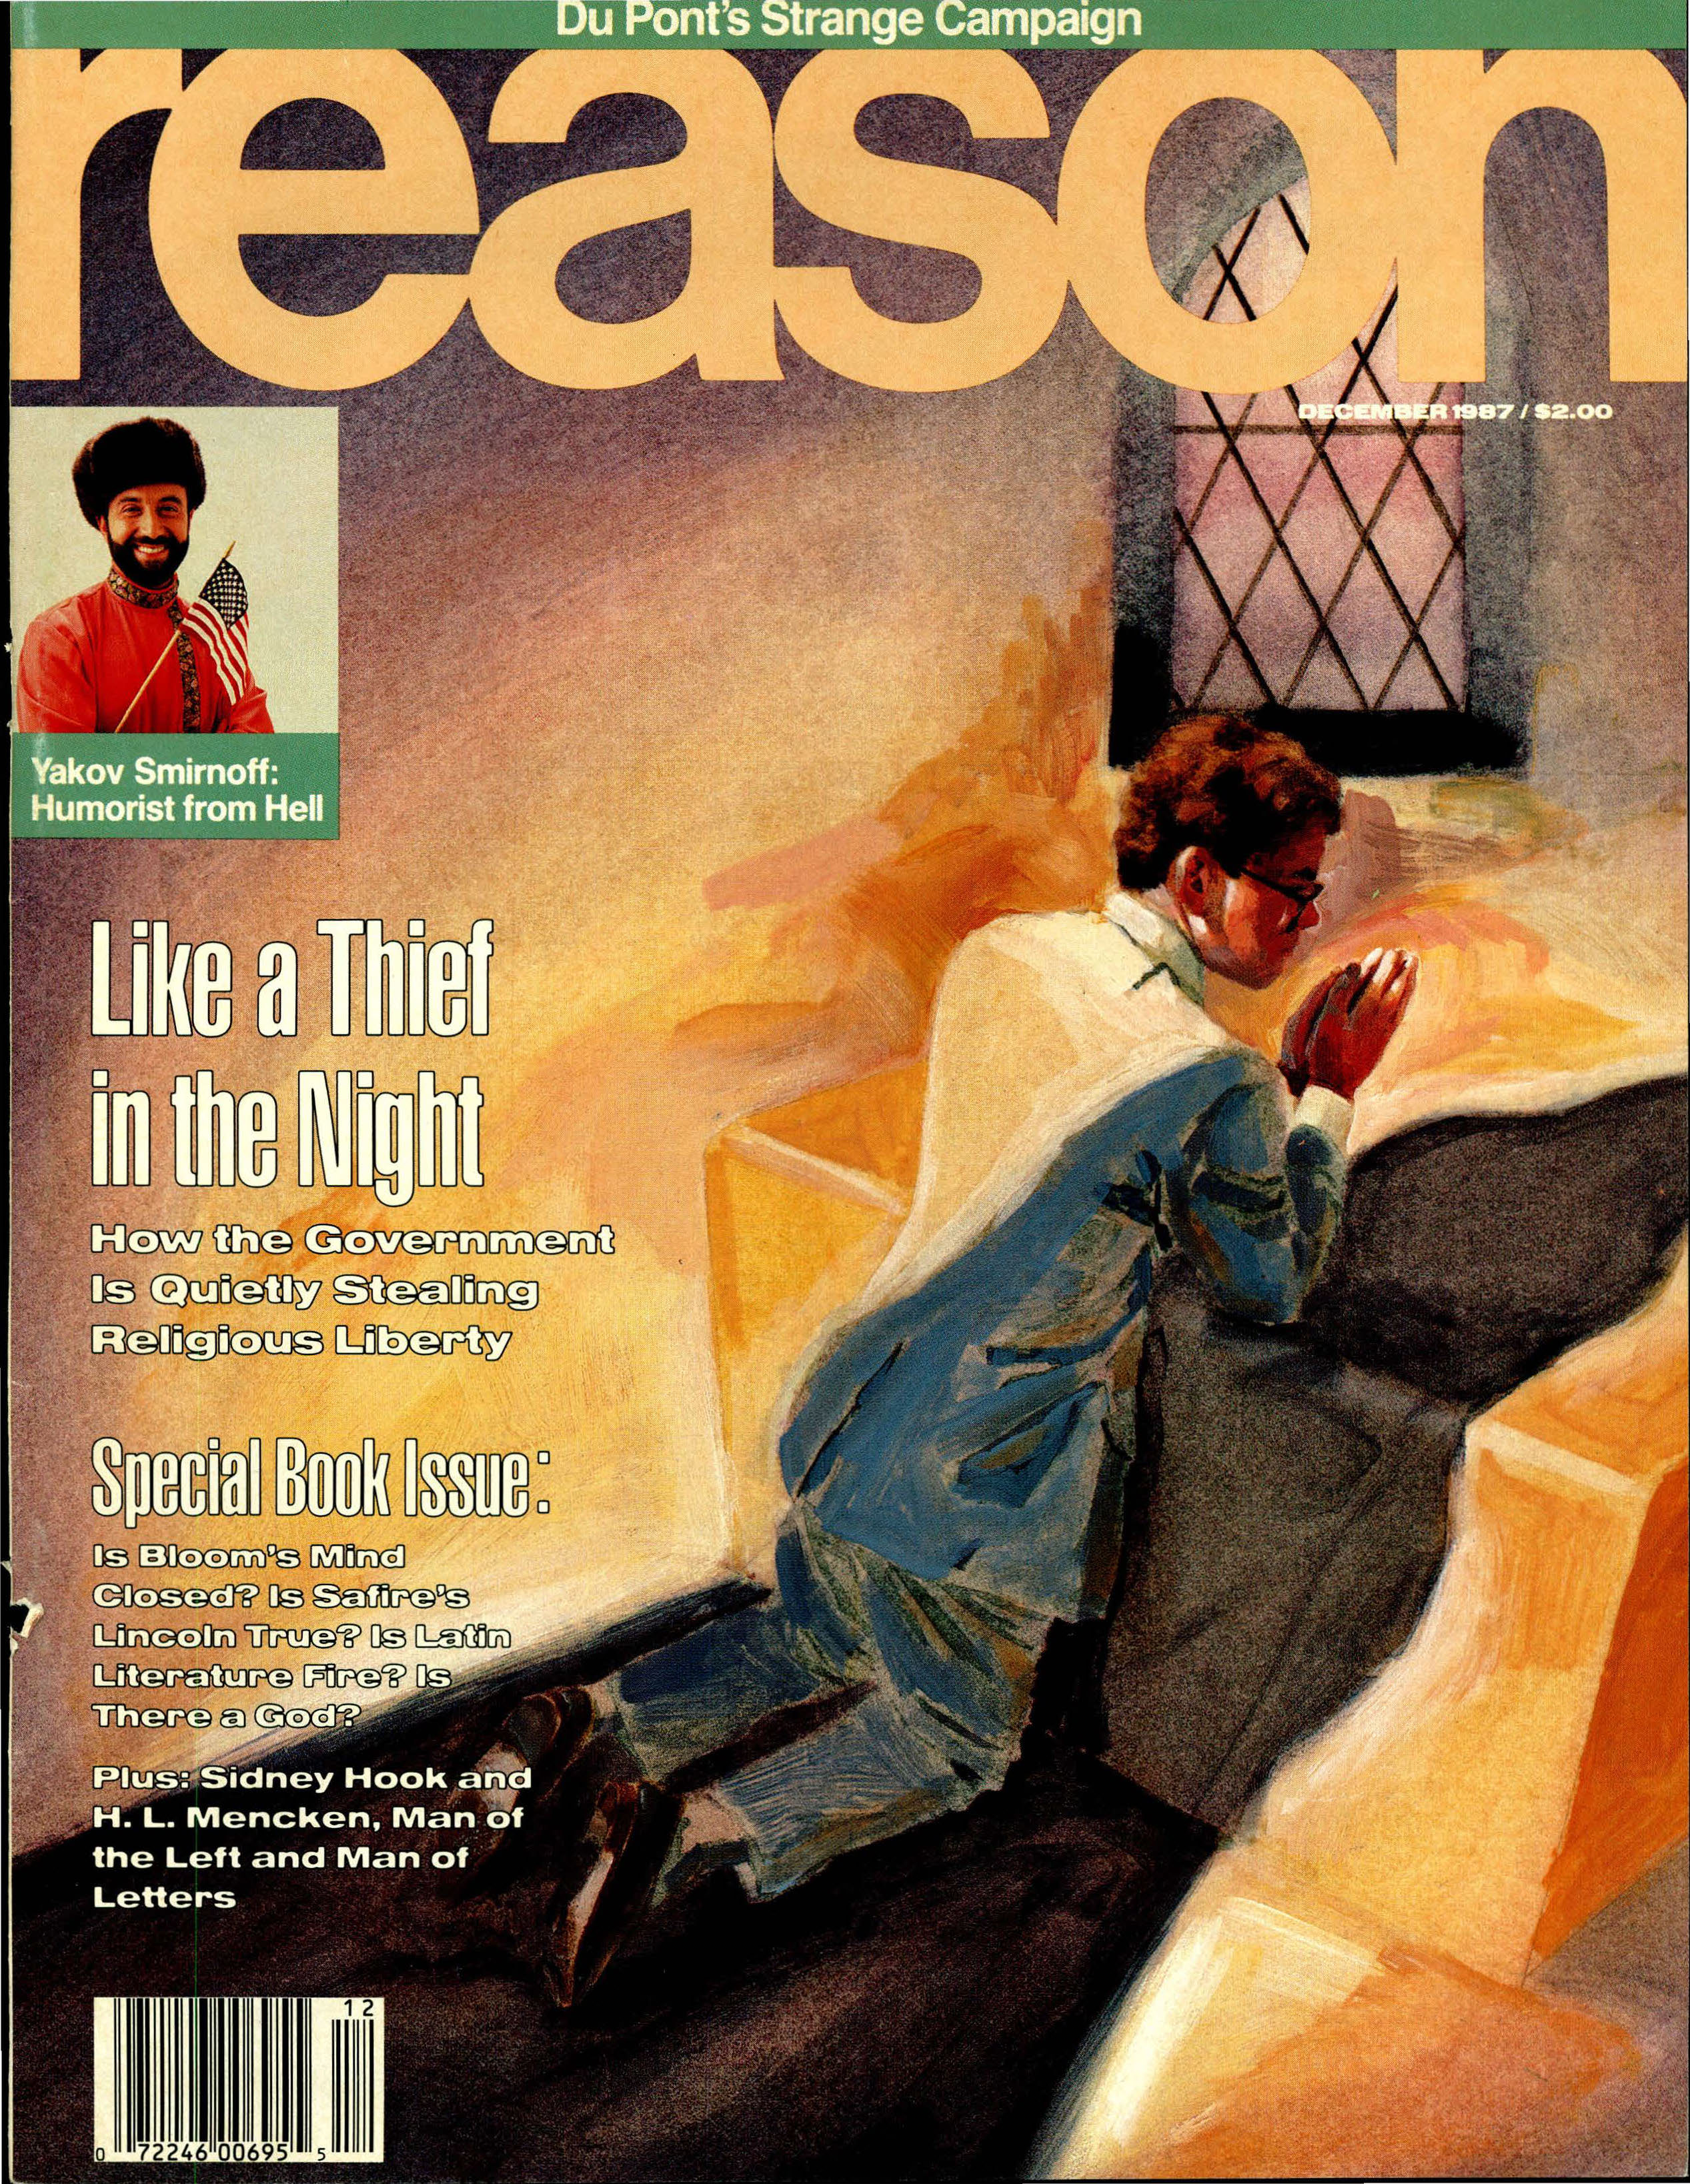 Reason Magazine, December 1987 cover image